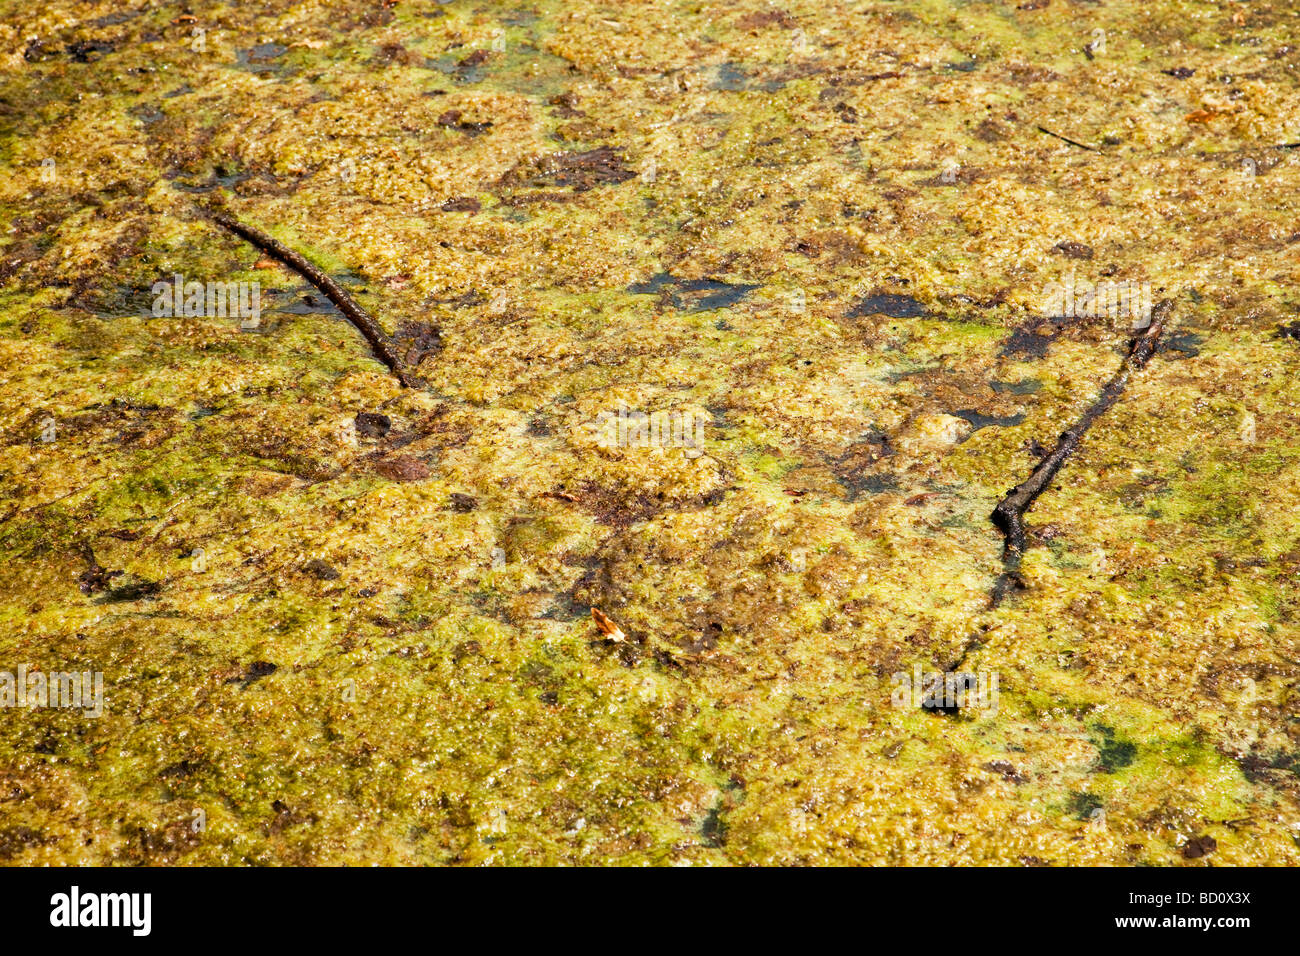 Algae growing on water - Stock Image